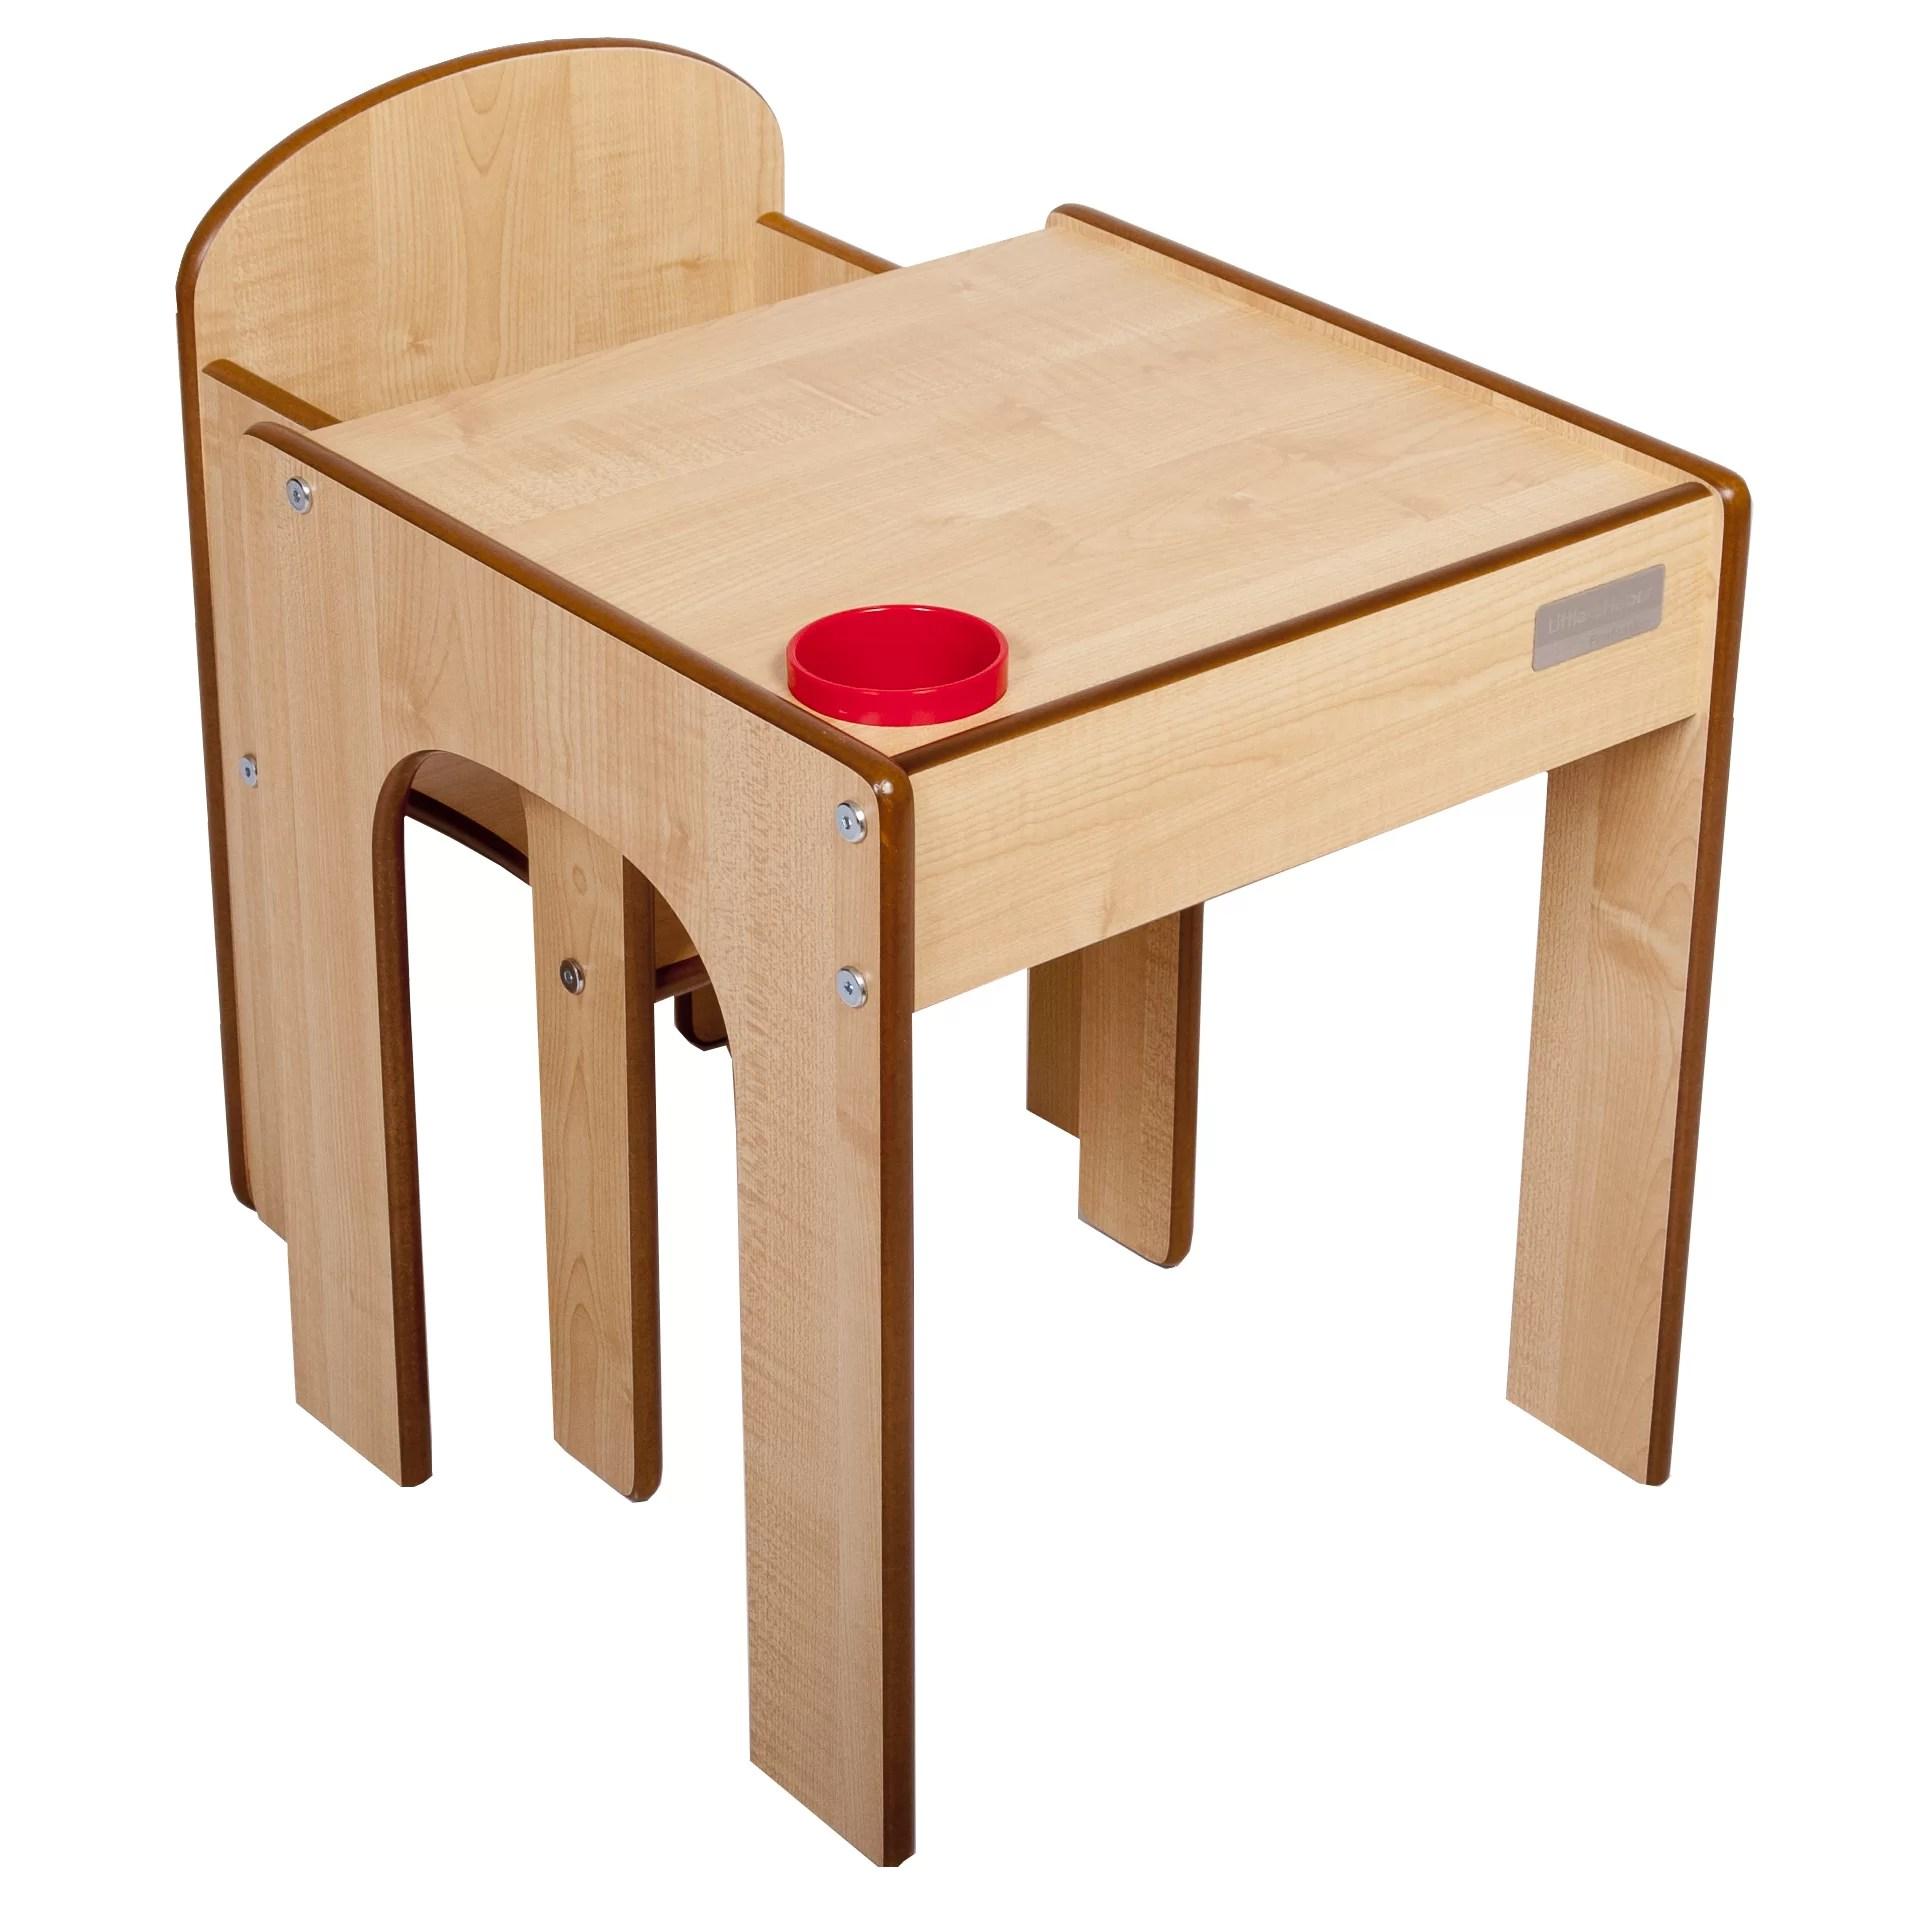 little kids table and chairs small accent with wood arms helper funstation toddler 2 piece chair